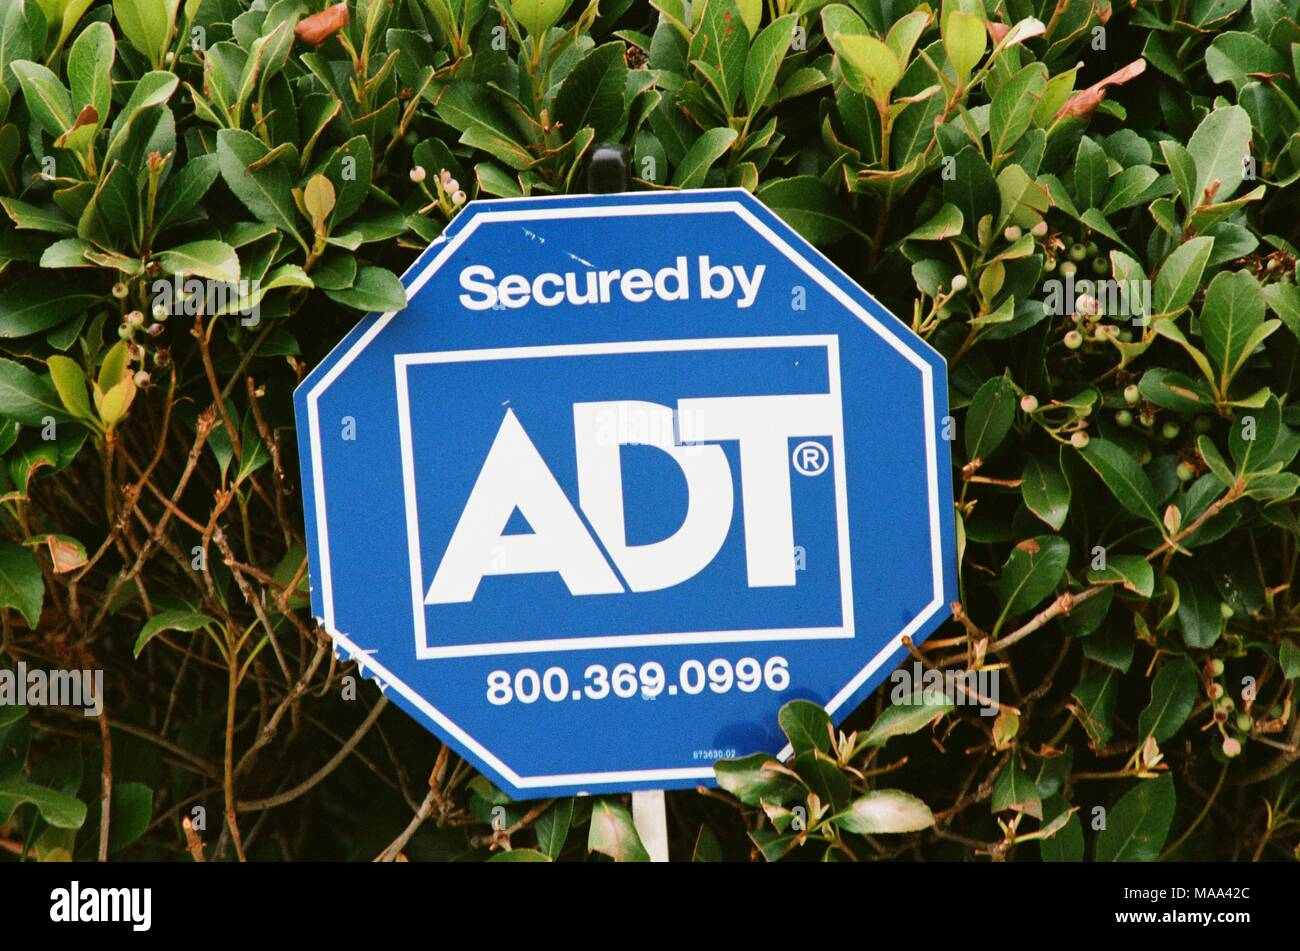 Adt Security Stock Photos Images Alamy Cameras Wiring Diagram Close Up Of Sign With Logo For Corporation A Residential And Business